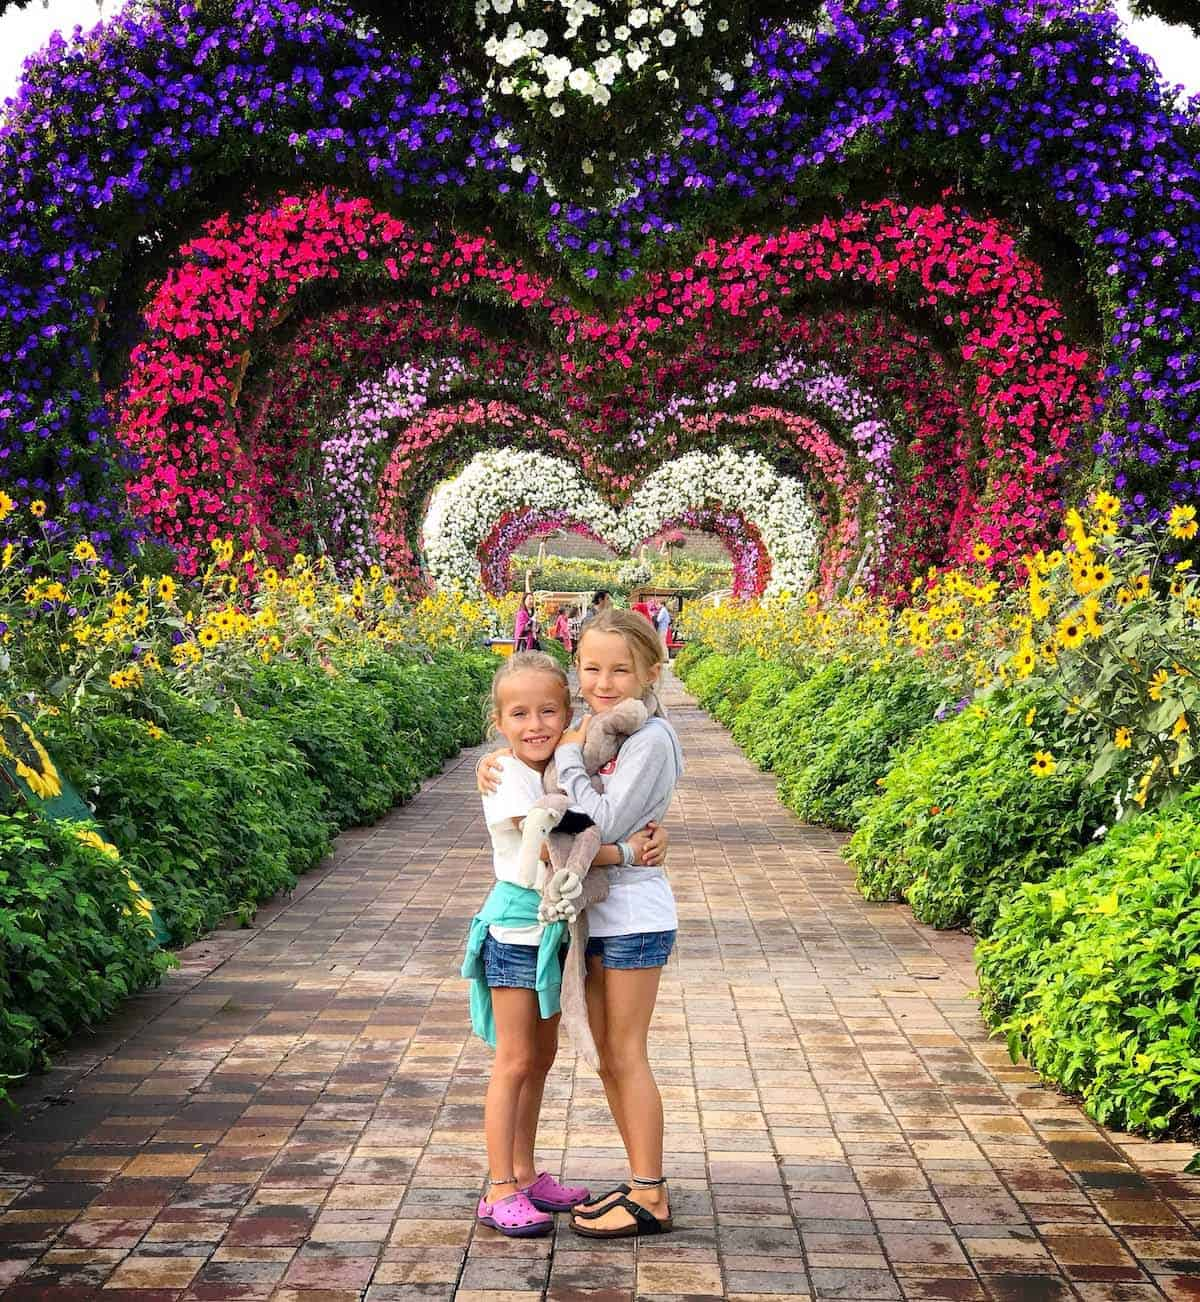 The Miracle Garden should be on your Dubai Bucket List